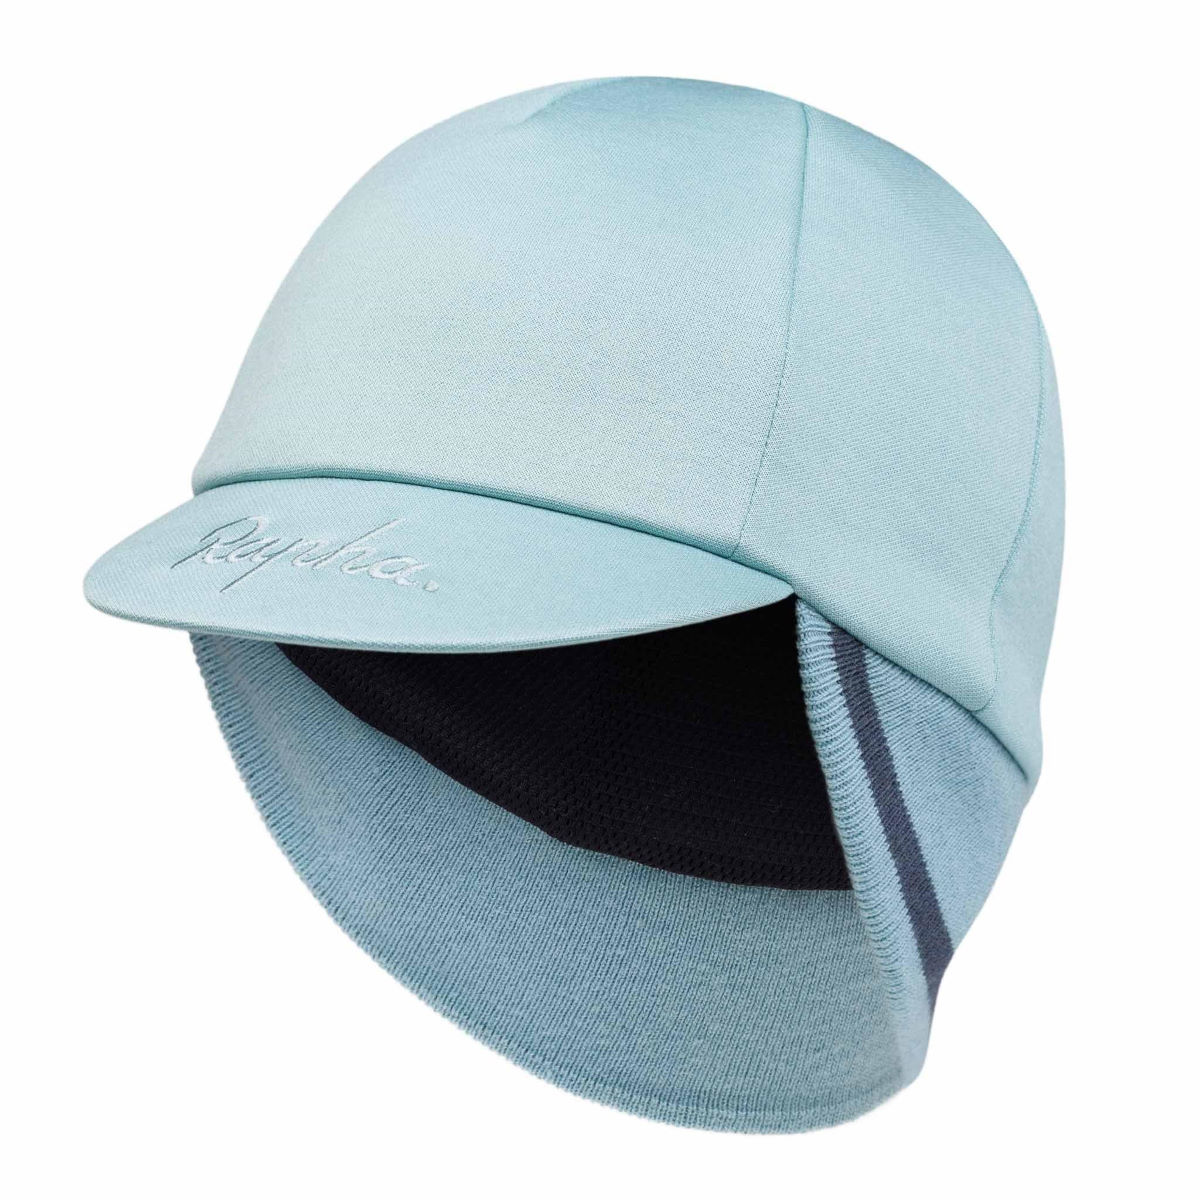 Rapha Winter Hat - Gorros térmicos